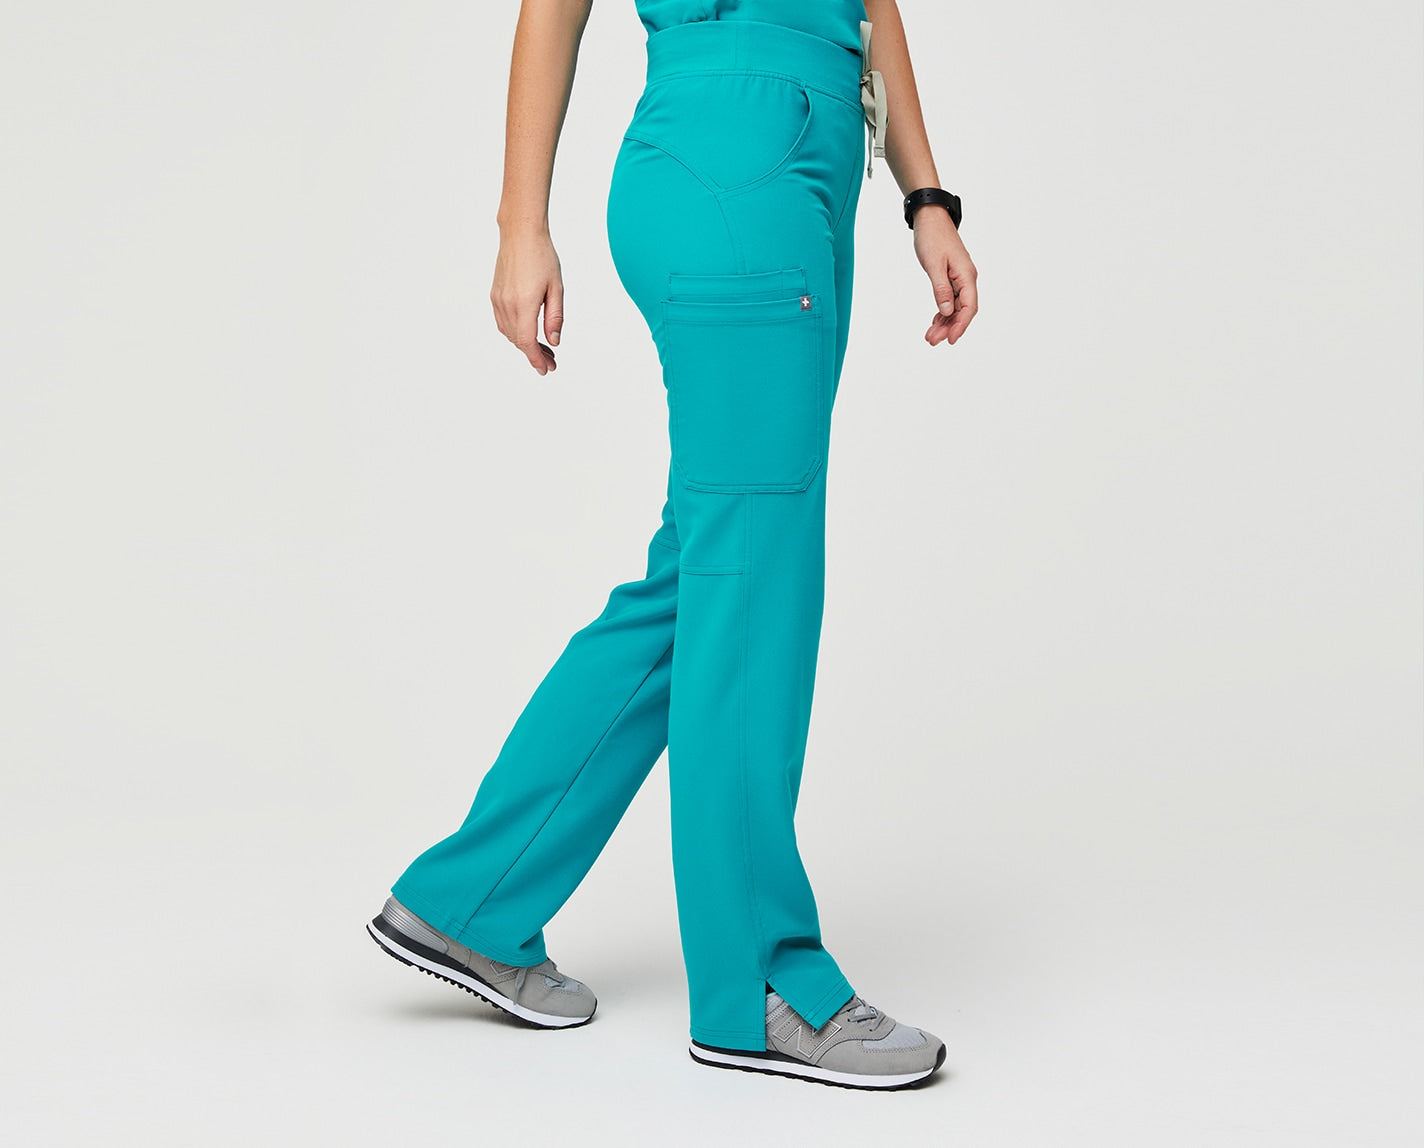 Is there any way for the night shift to feel as good as a yoga session? Maybe not, but the Kade gets close. Inspired by yoga apparel, it has a comfy waistband, flattering back yoke (that makes your butt look GOOD) and four pockets. And, yep, it's made with our proprietary FIONx fabric.